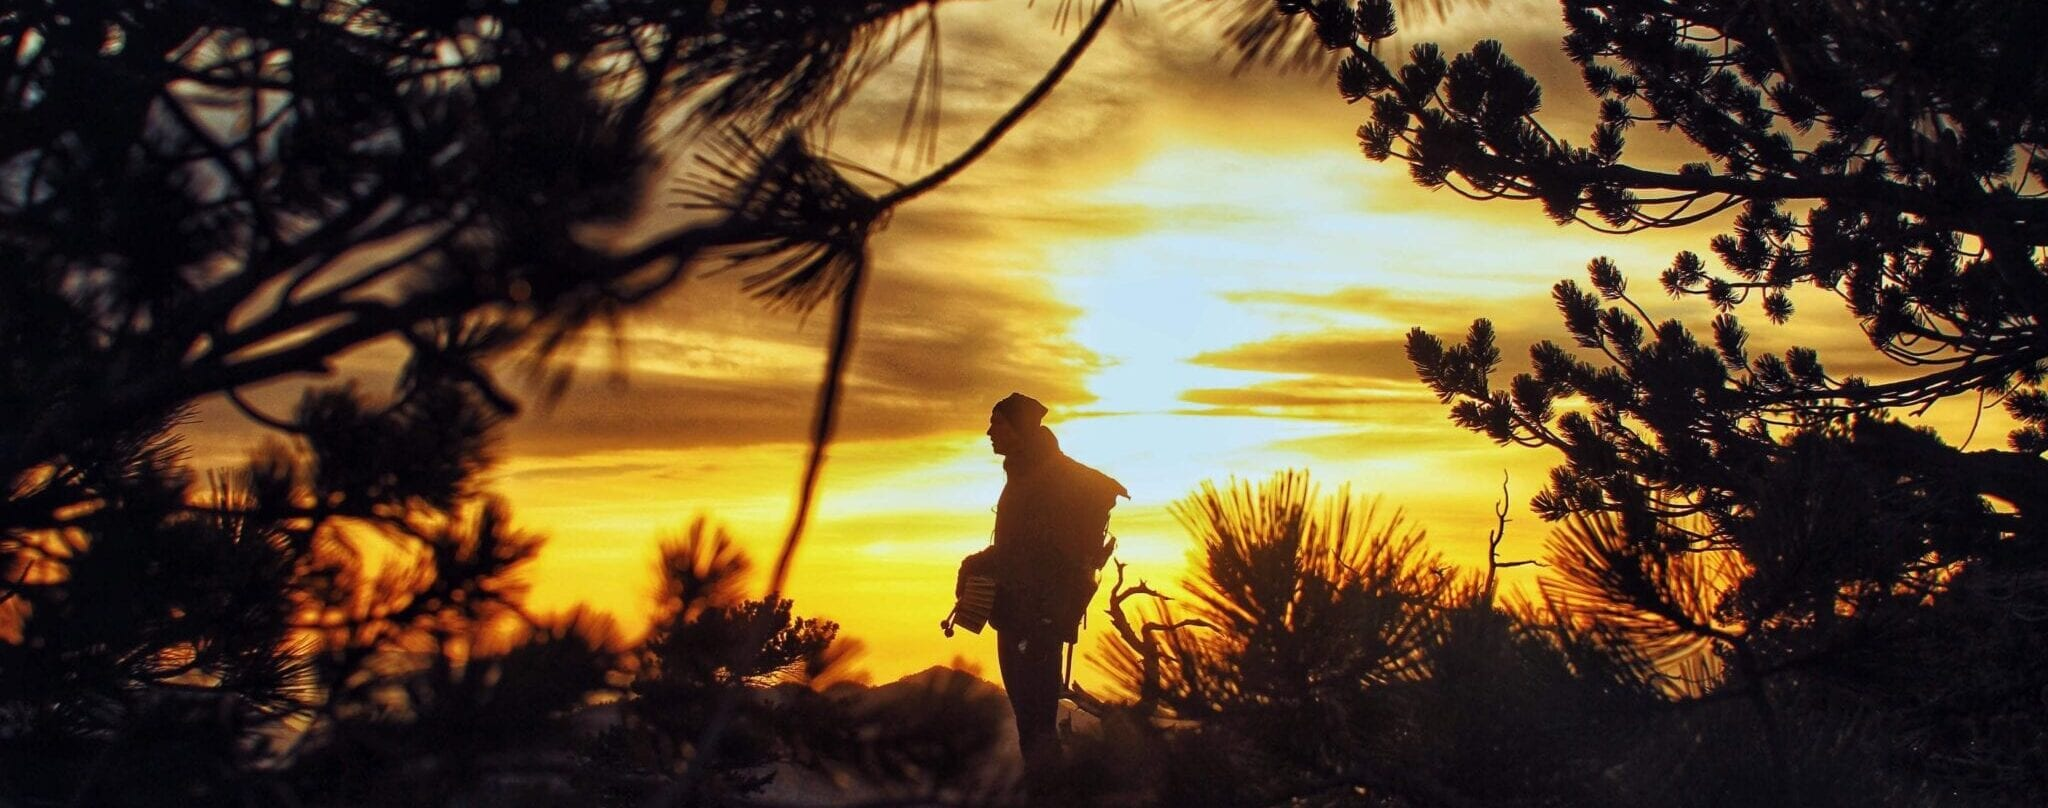 A hiker siloutted in front of a sunset with pine trees all around them.